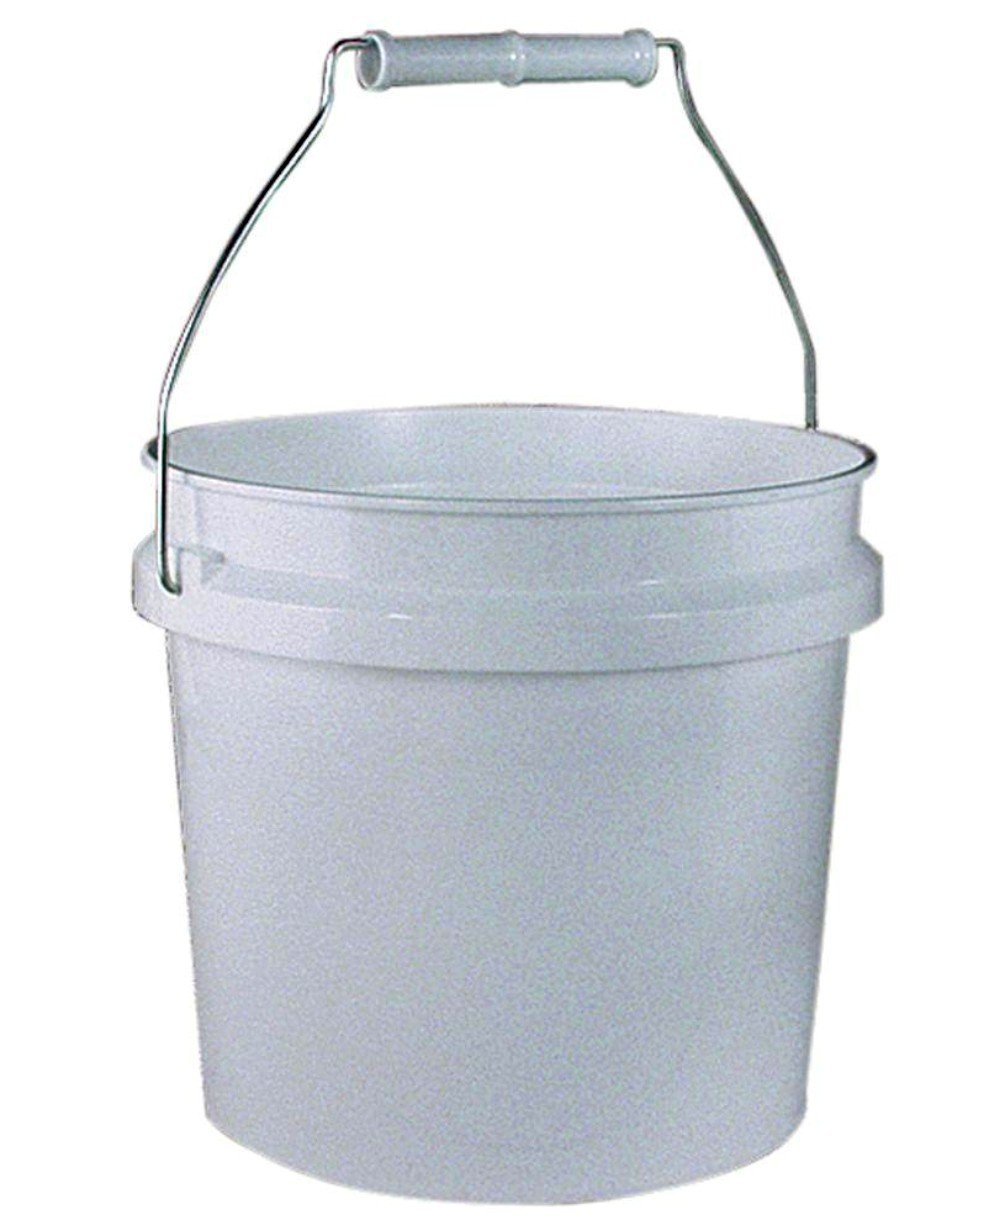 1 Gallon White Bucket with Lid | Per 6 Pack by BayTec